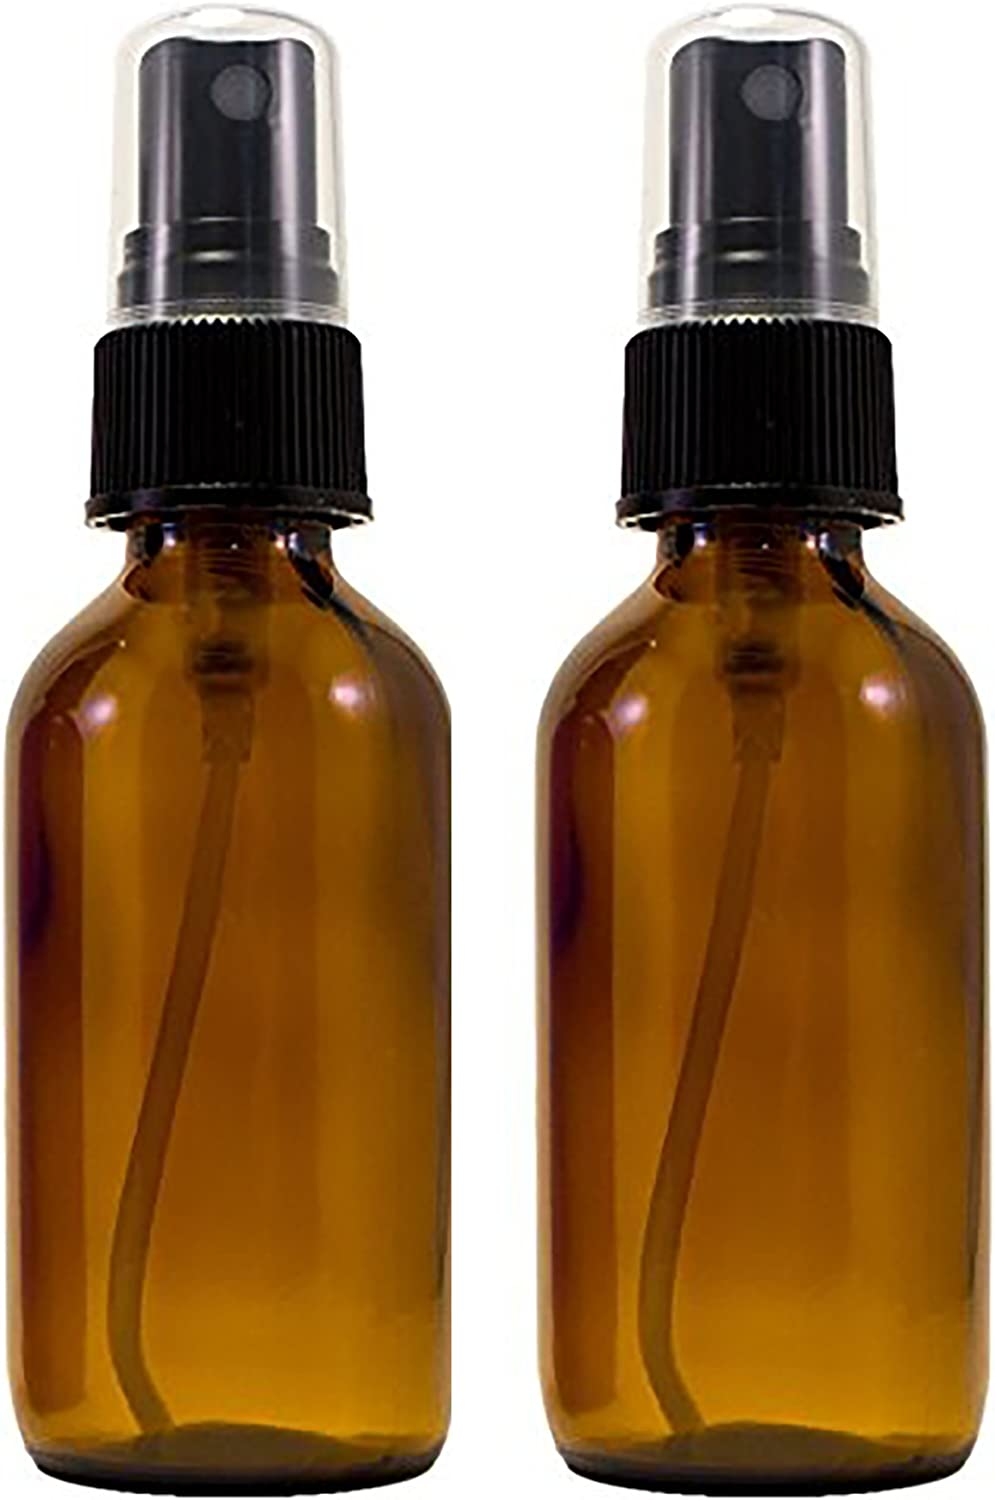 Amber Glass Spray Bottle (2 oz, 2 pk) with BONUS Waterproof Labels, Fine Mist Sprayer, for Essential Oils, Colognes & Perfumes, Highest Quality